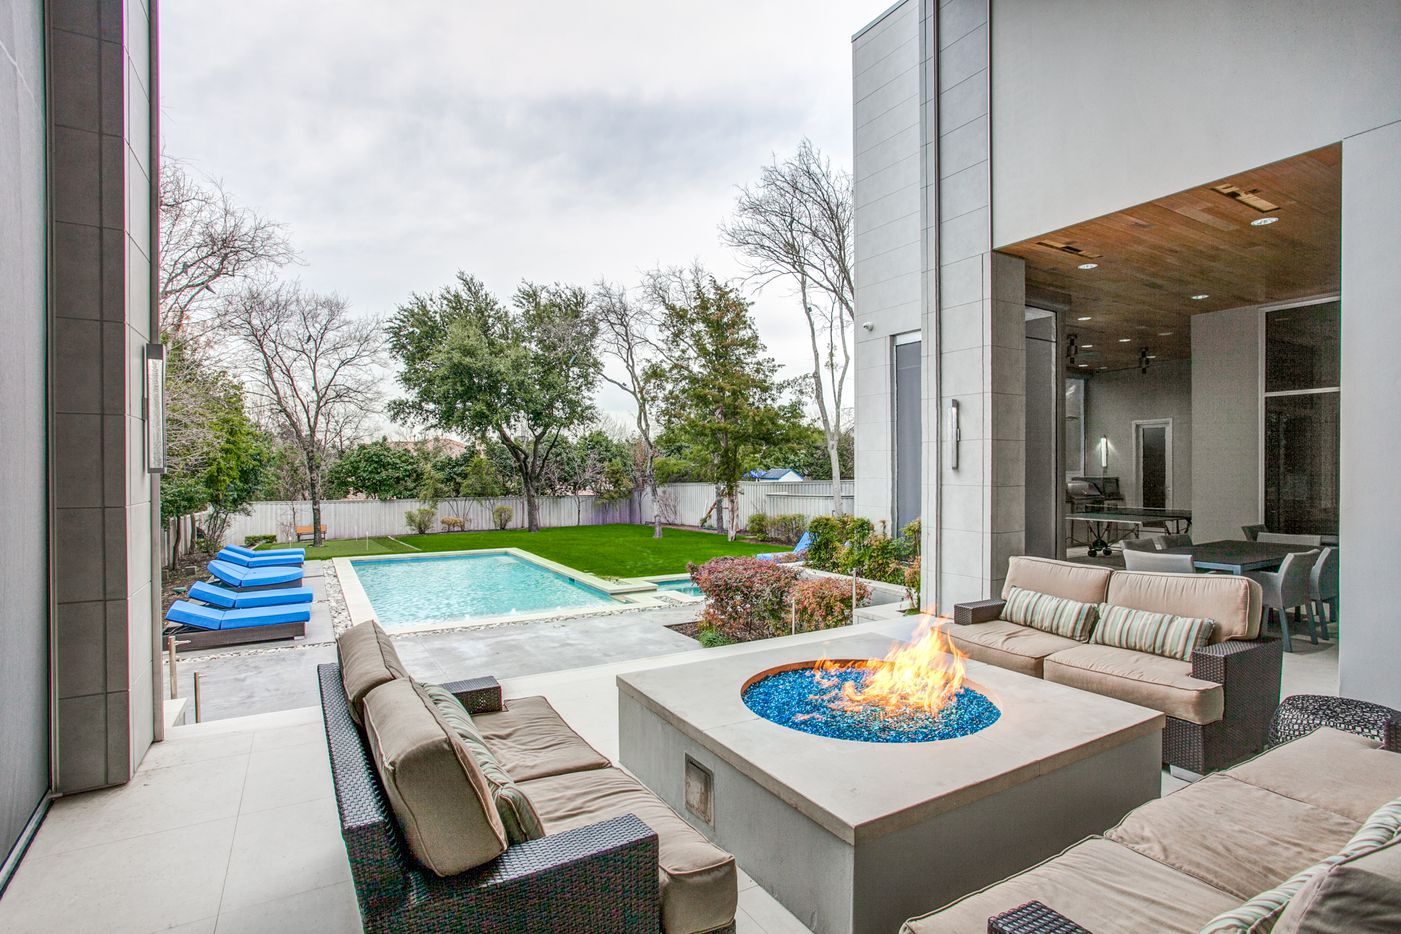 A look at the property at 6517 Dykes Way in Dallas.